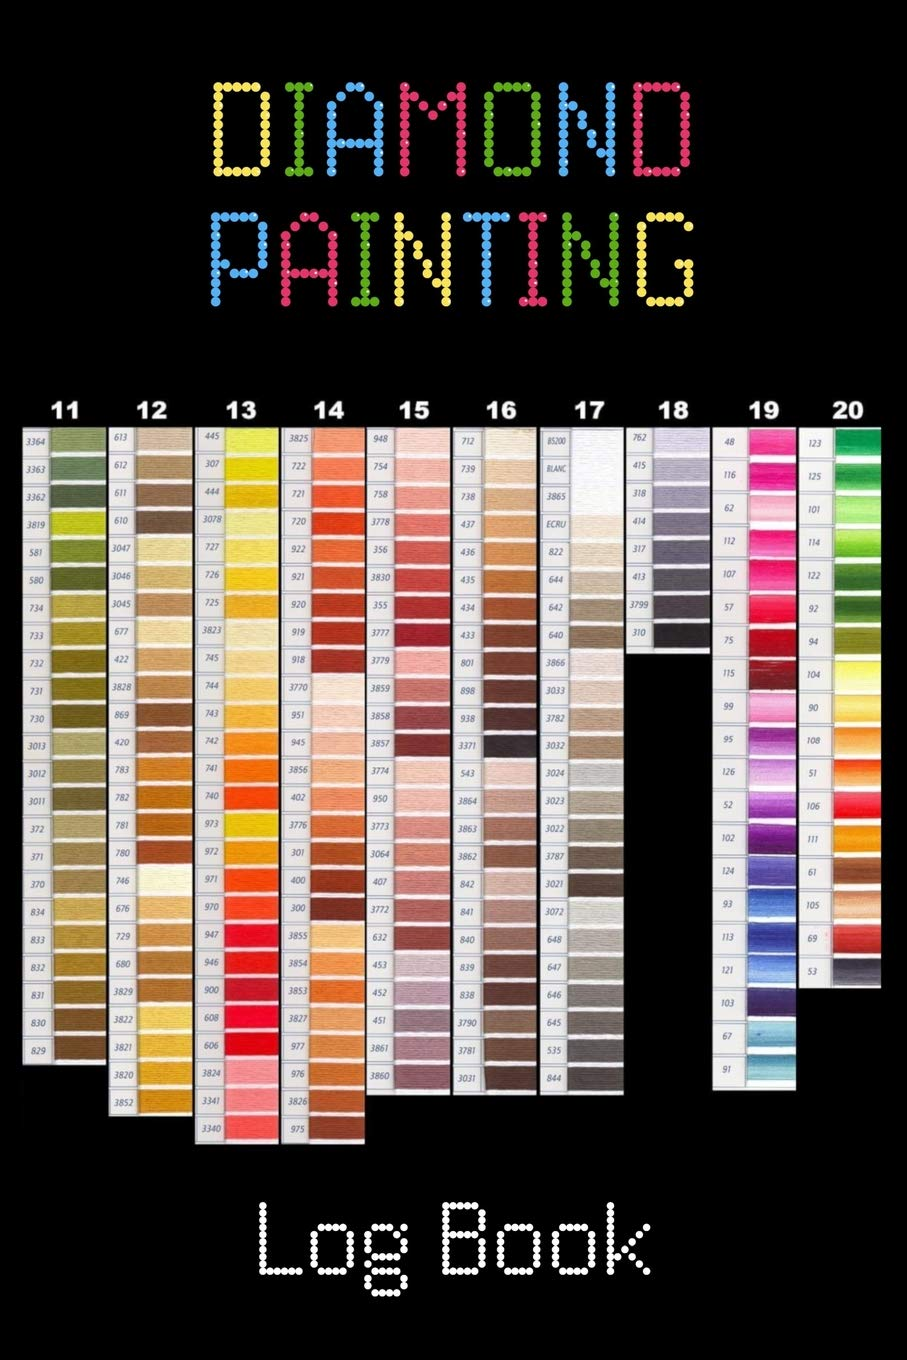 Diamond Painting Log Book Expanded Version Notebook To Track Dp Art Projects Color Chart Design Expanded Organizer To Track Even More Dp Details Notebooks Diamond Dot 9781724002266 Amazon Com Books